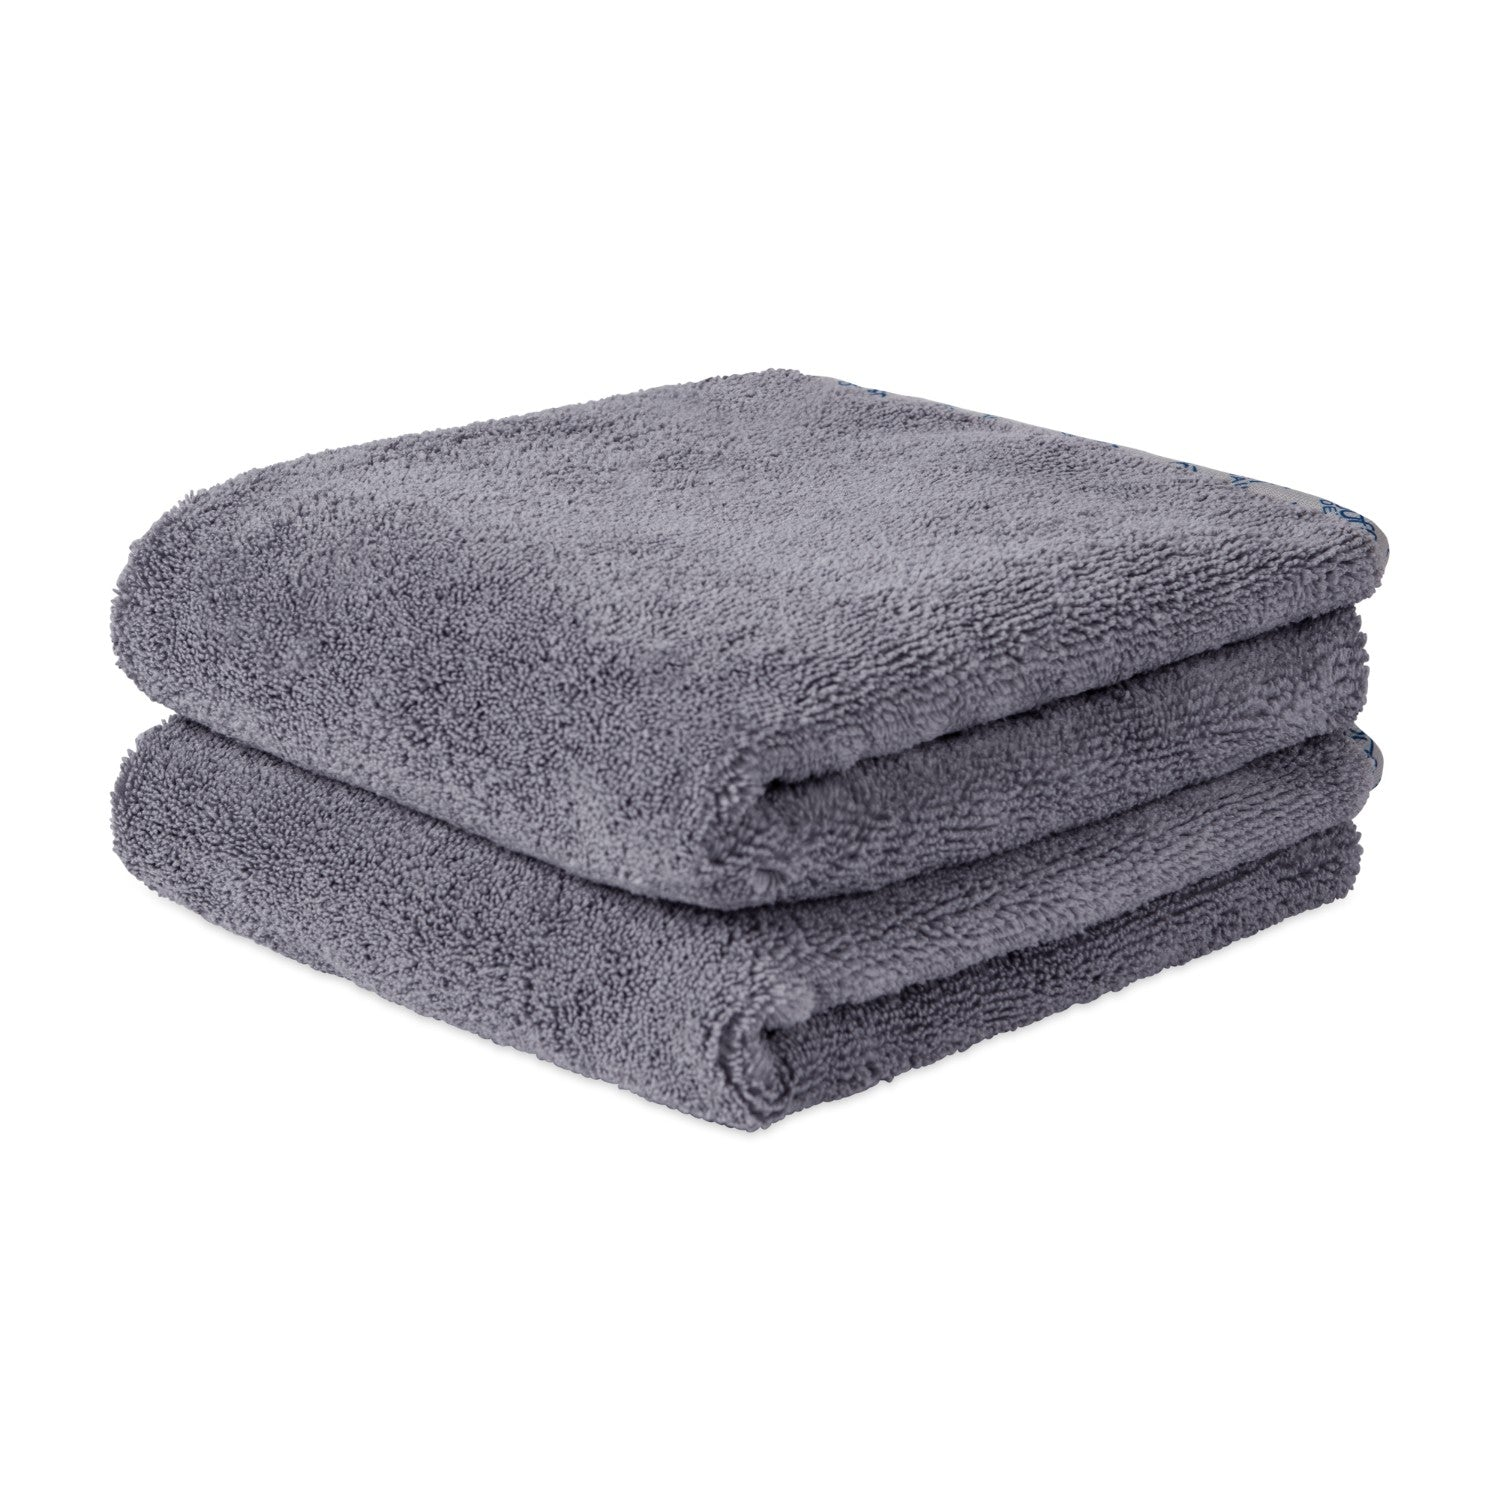 Gray Microfiber Car Drying Towel Super Absorbent